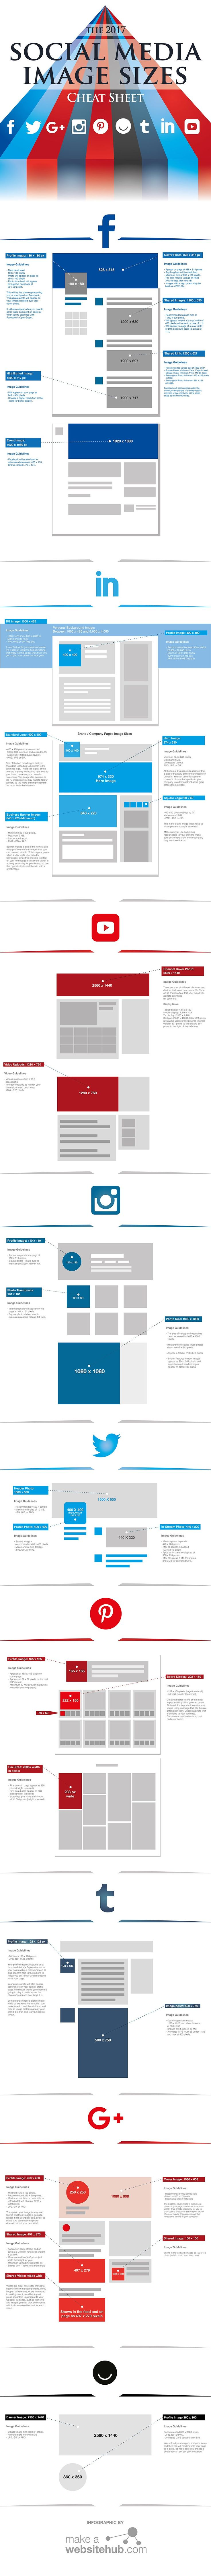 Facebook, Twitter, GooglePlus, Instagram, Pinterest, Tumblr, LinkedIn, YouTube: Social Media Image Sizes: Everything You Need to Know - infographic